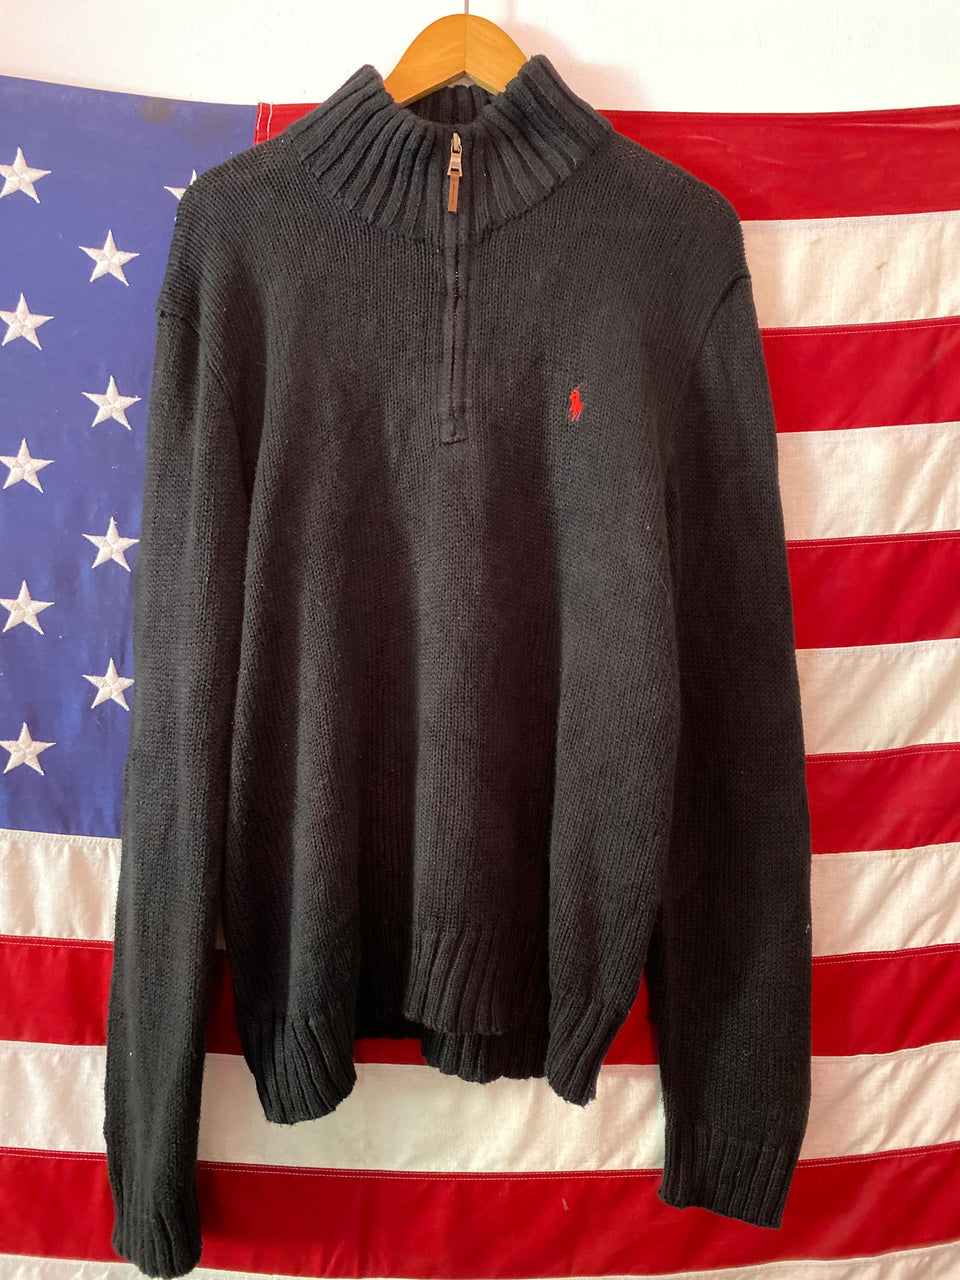 1151 Polo by Ralph Lauren knitted jumper